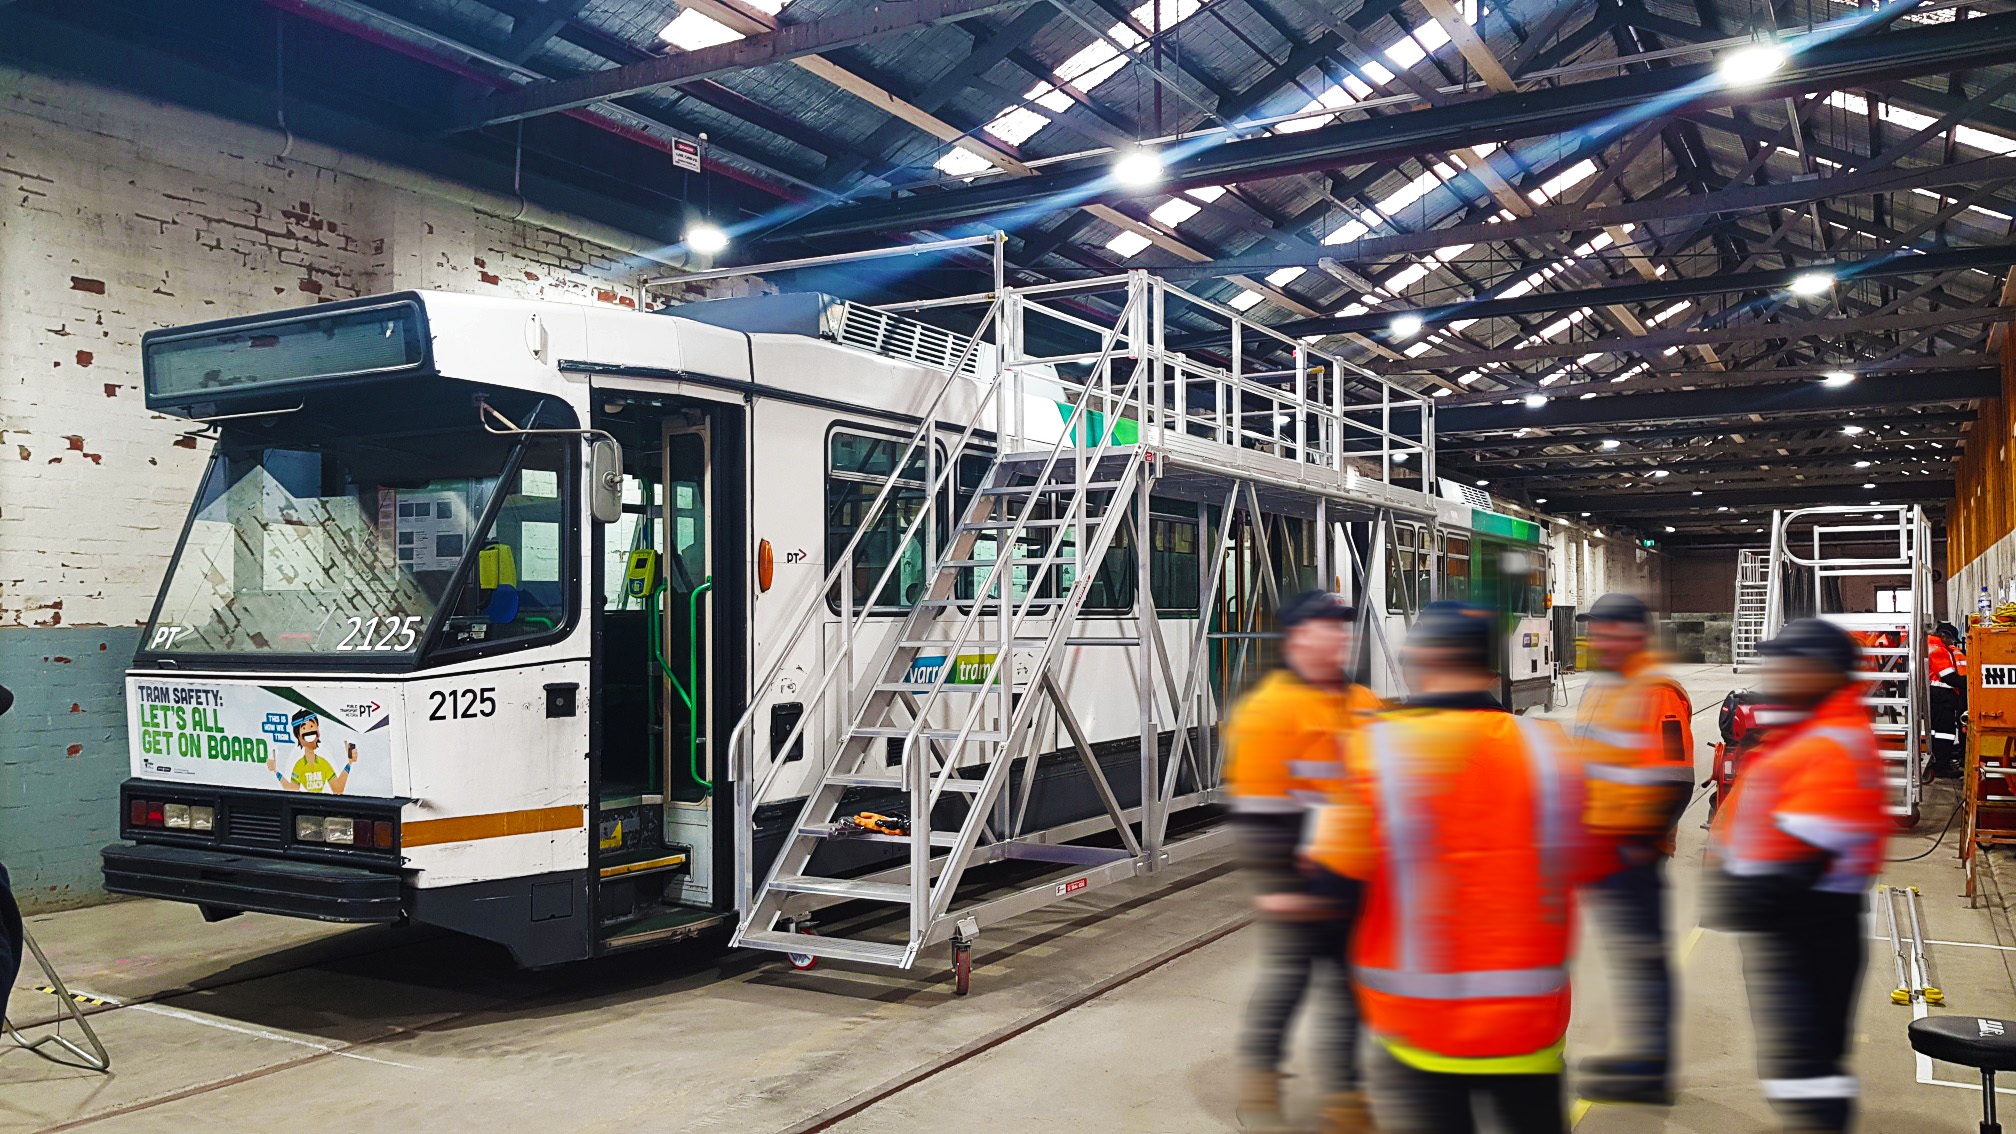 Melbourne Tram Refurbishment Gets a SafeSmart Lift